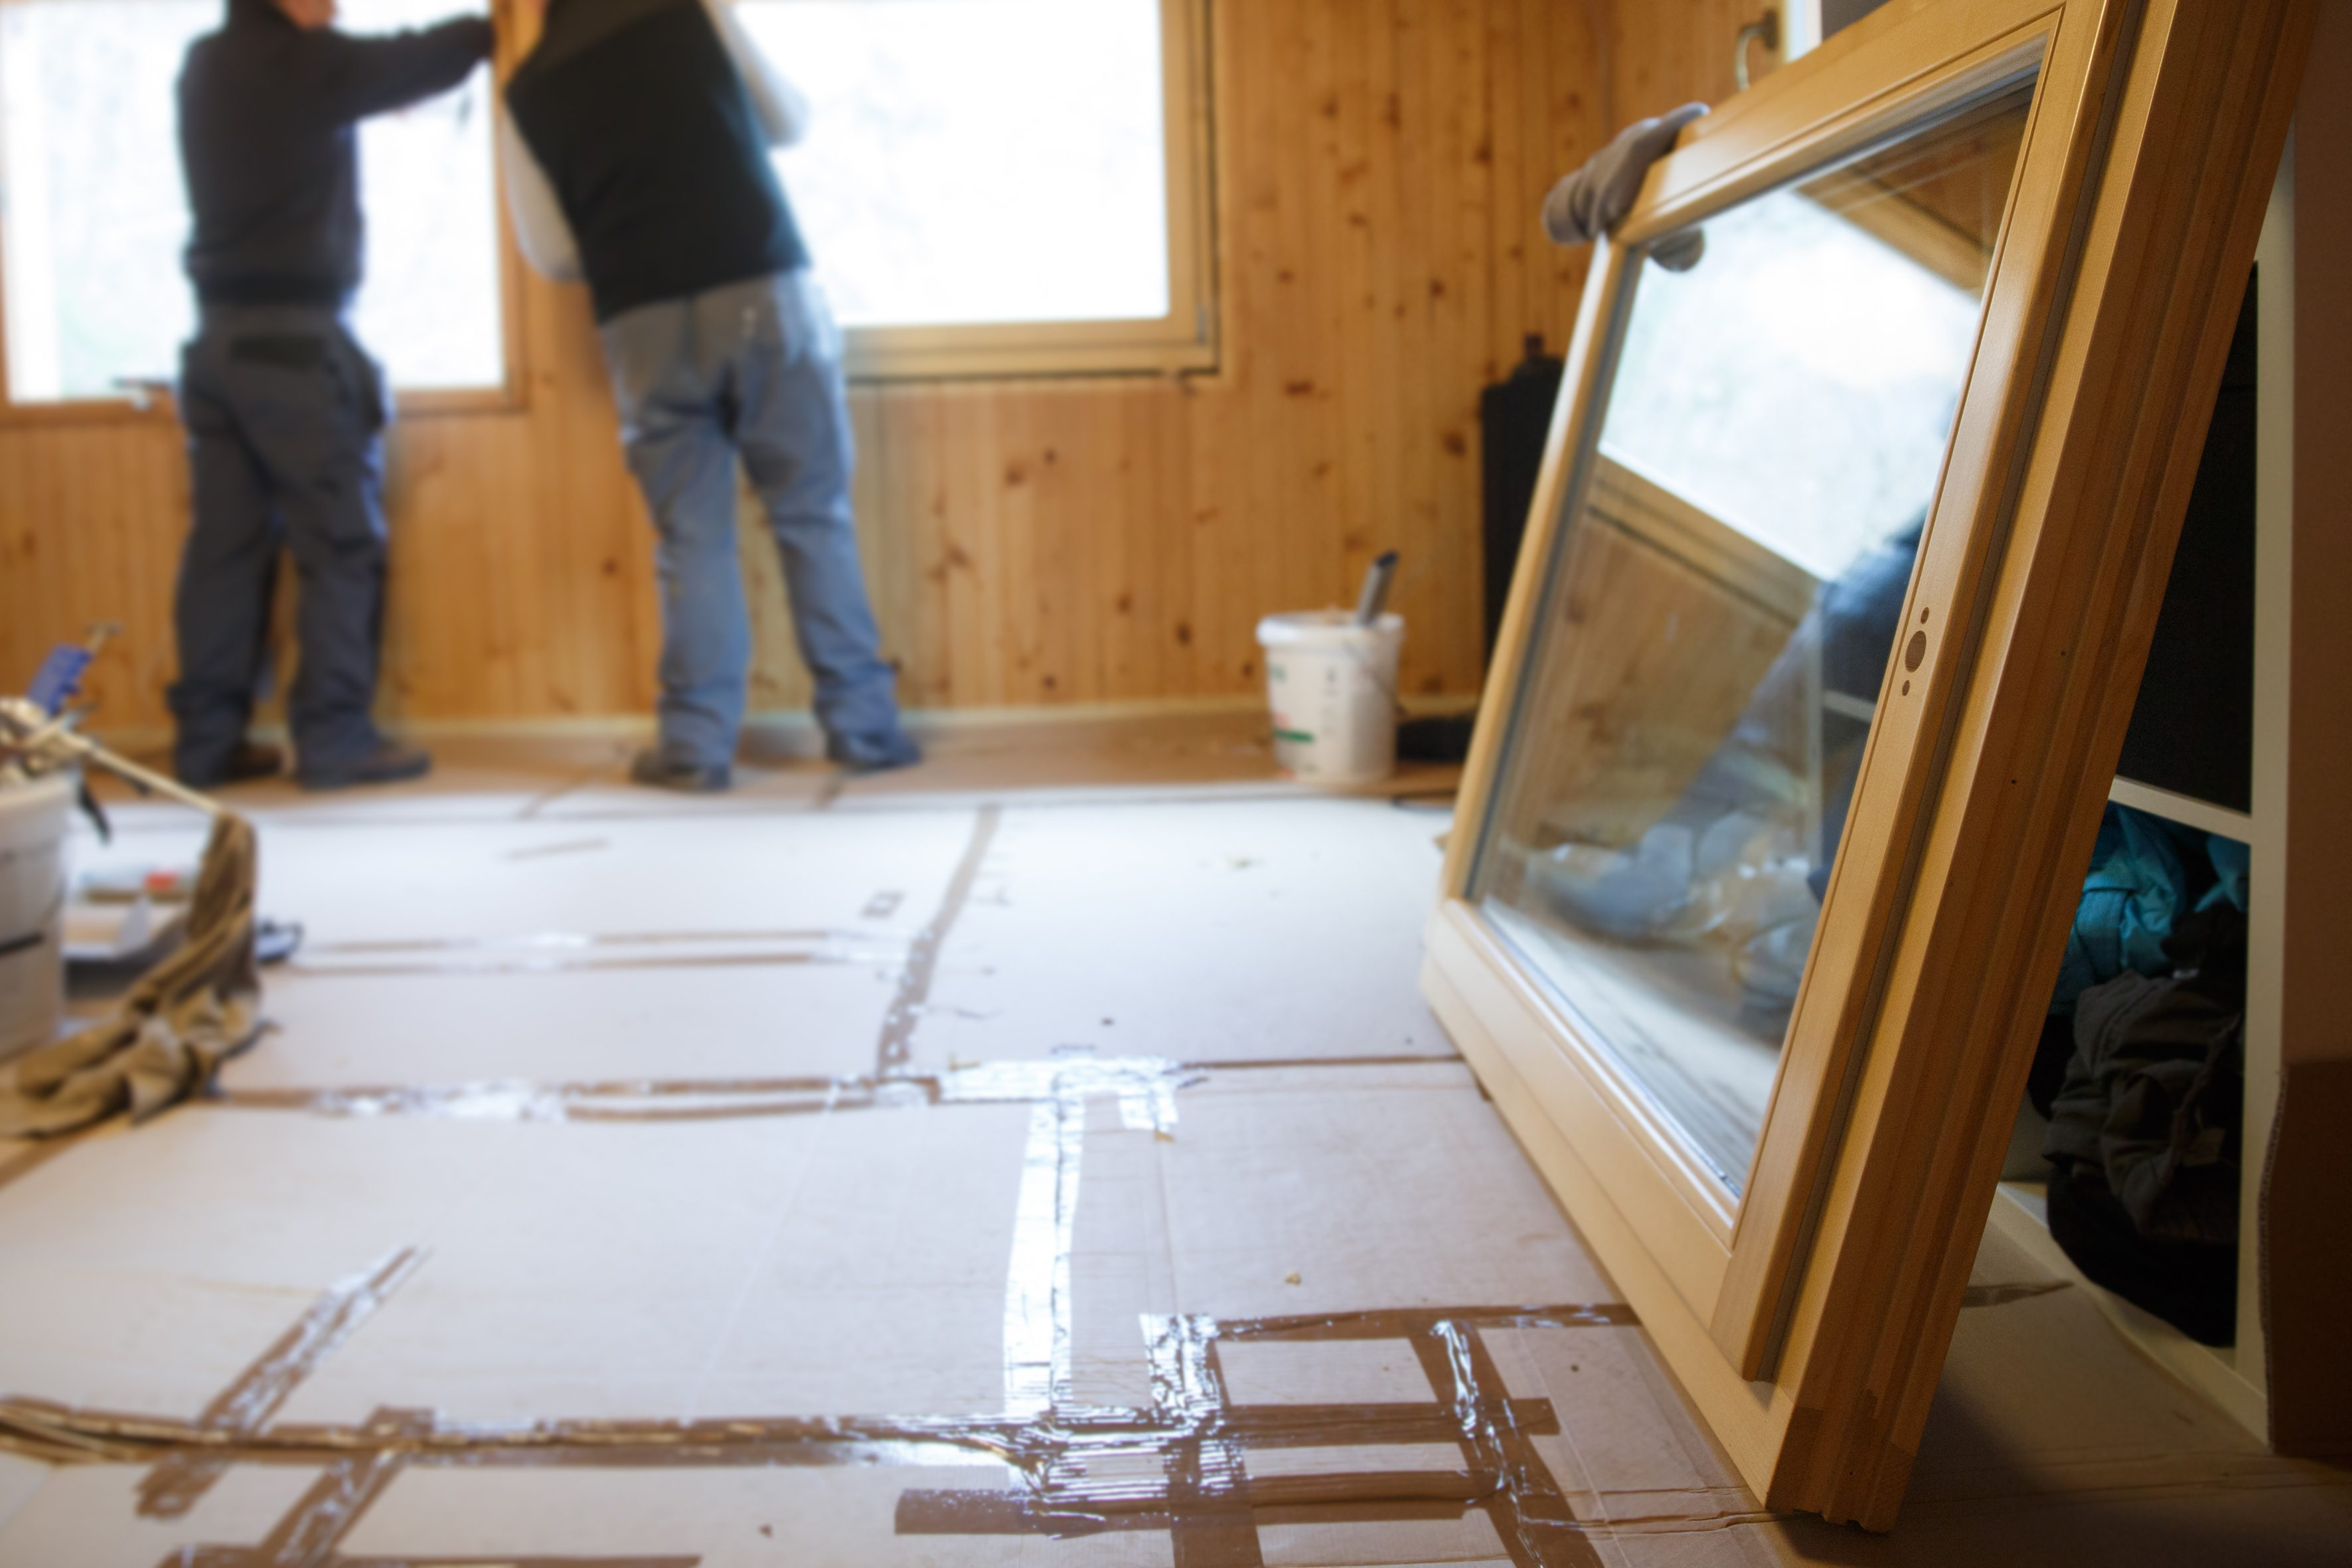 Workers in the background installing new, three pane wooden windows in an old wooden house, with a new window in the foreground. Home renovation, sustainable living, energy efficiency concept.